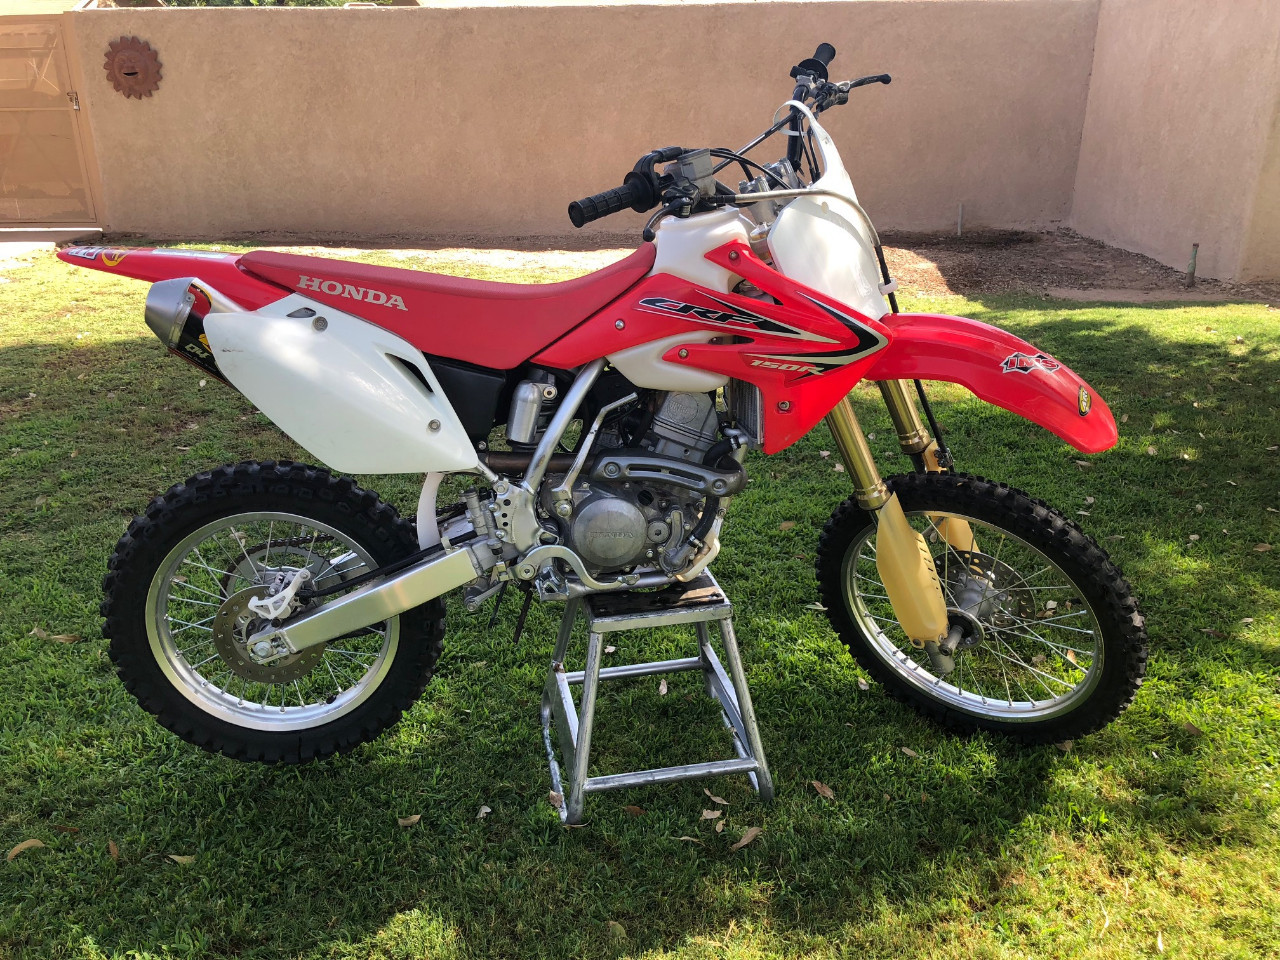 6040 Honda Dirt Bike Motorcycles For Sale Cycle Trader 2003 50cc Pit